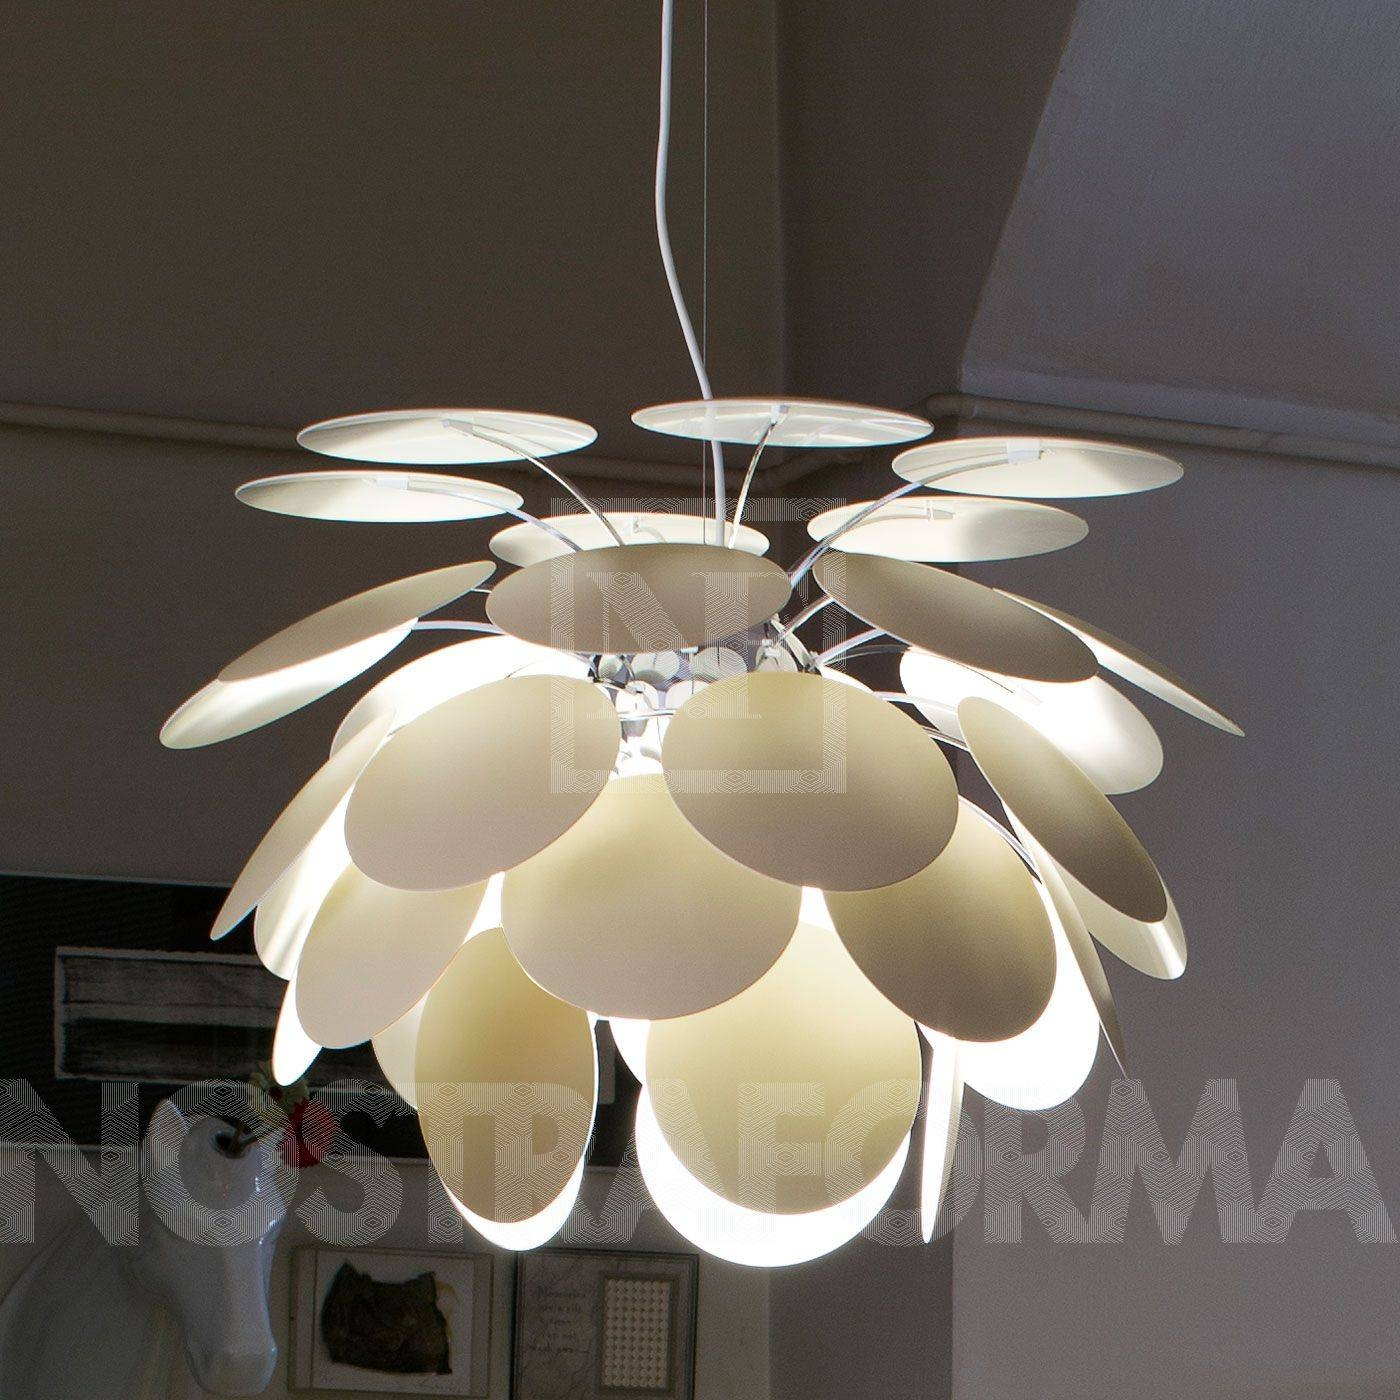 Marset Discoco 132 Pendant Lamp, Very Large » Modern And with regard to Discoco Pendant Lights (Image 11 of 15)